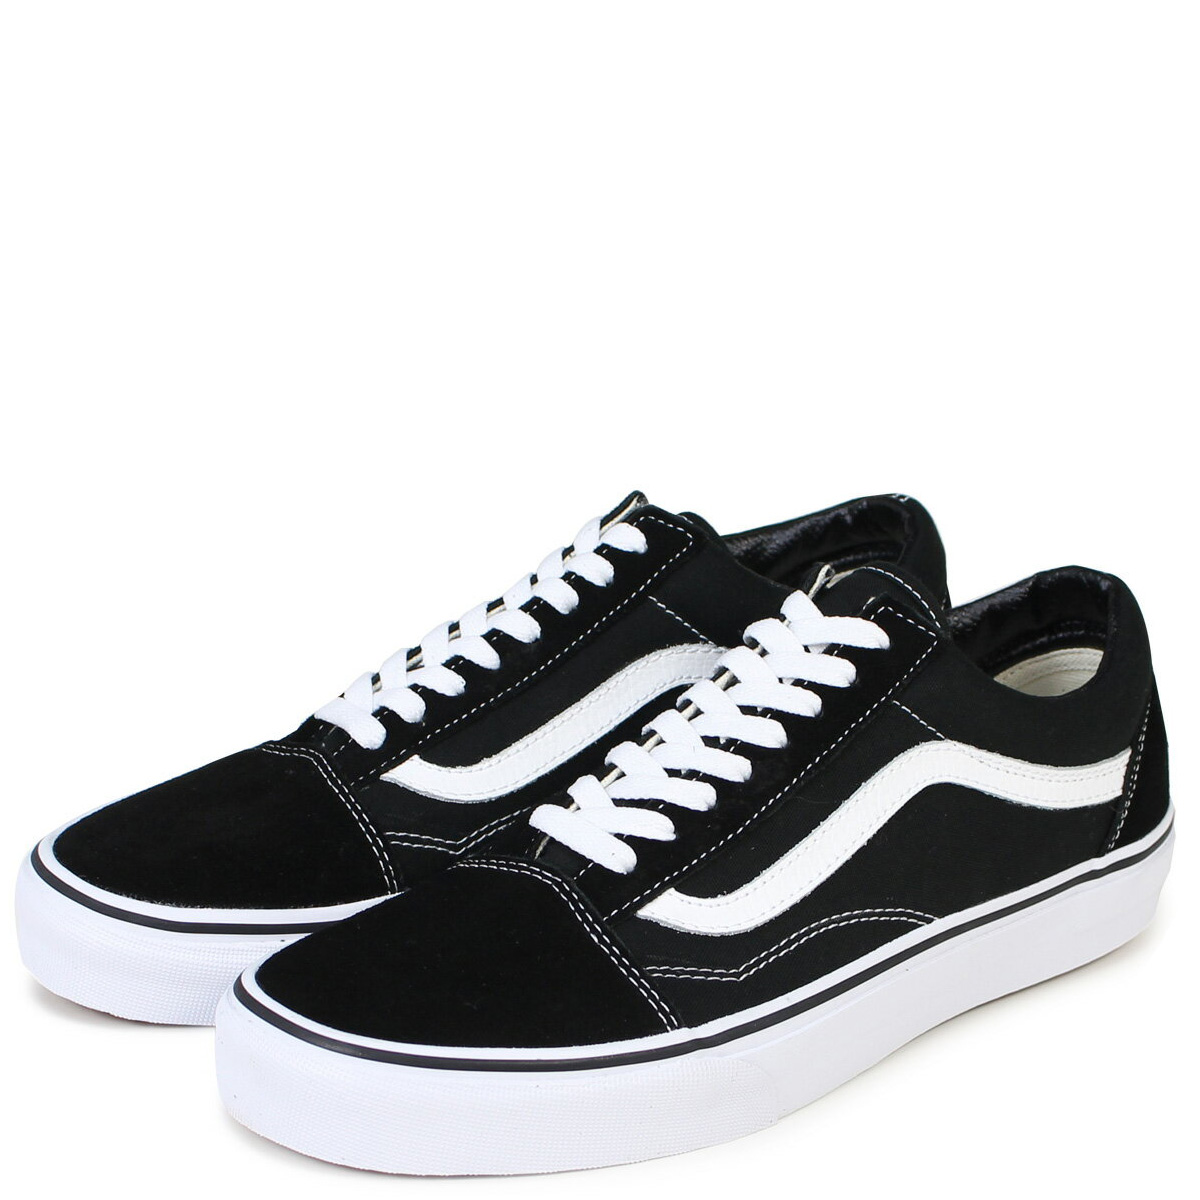 1748692db0f VANS old school sneaker mens vans vans OLD SKOOL shoes black  book product  11   26 days in stock will add in stock